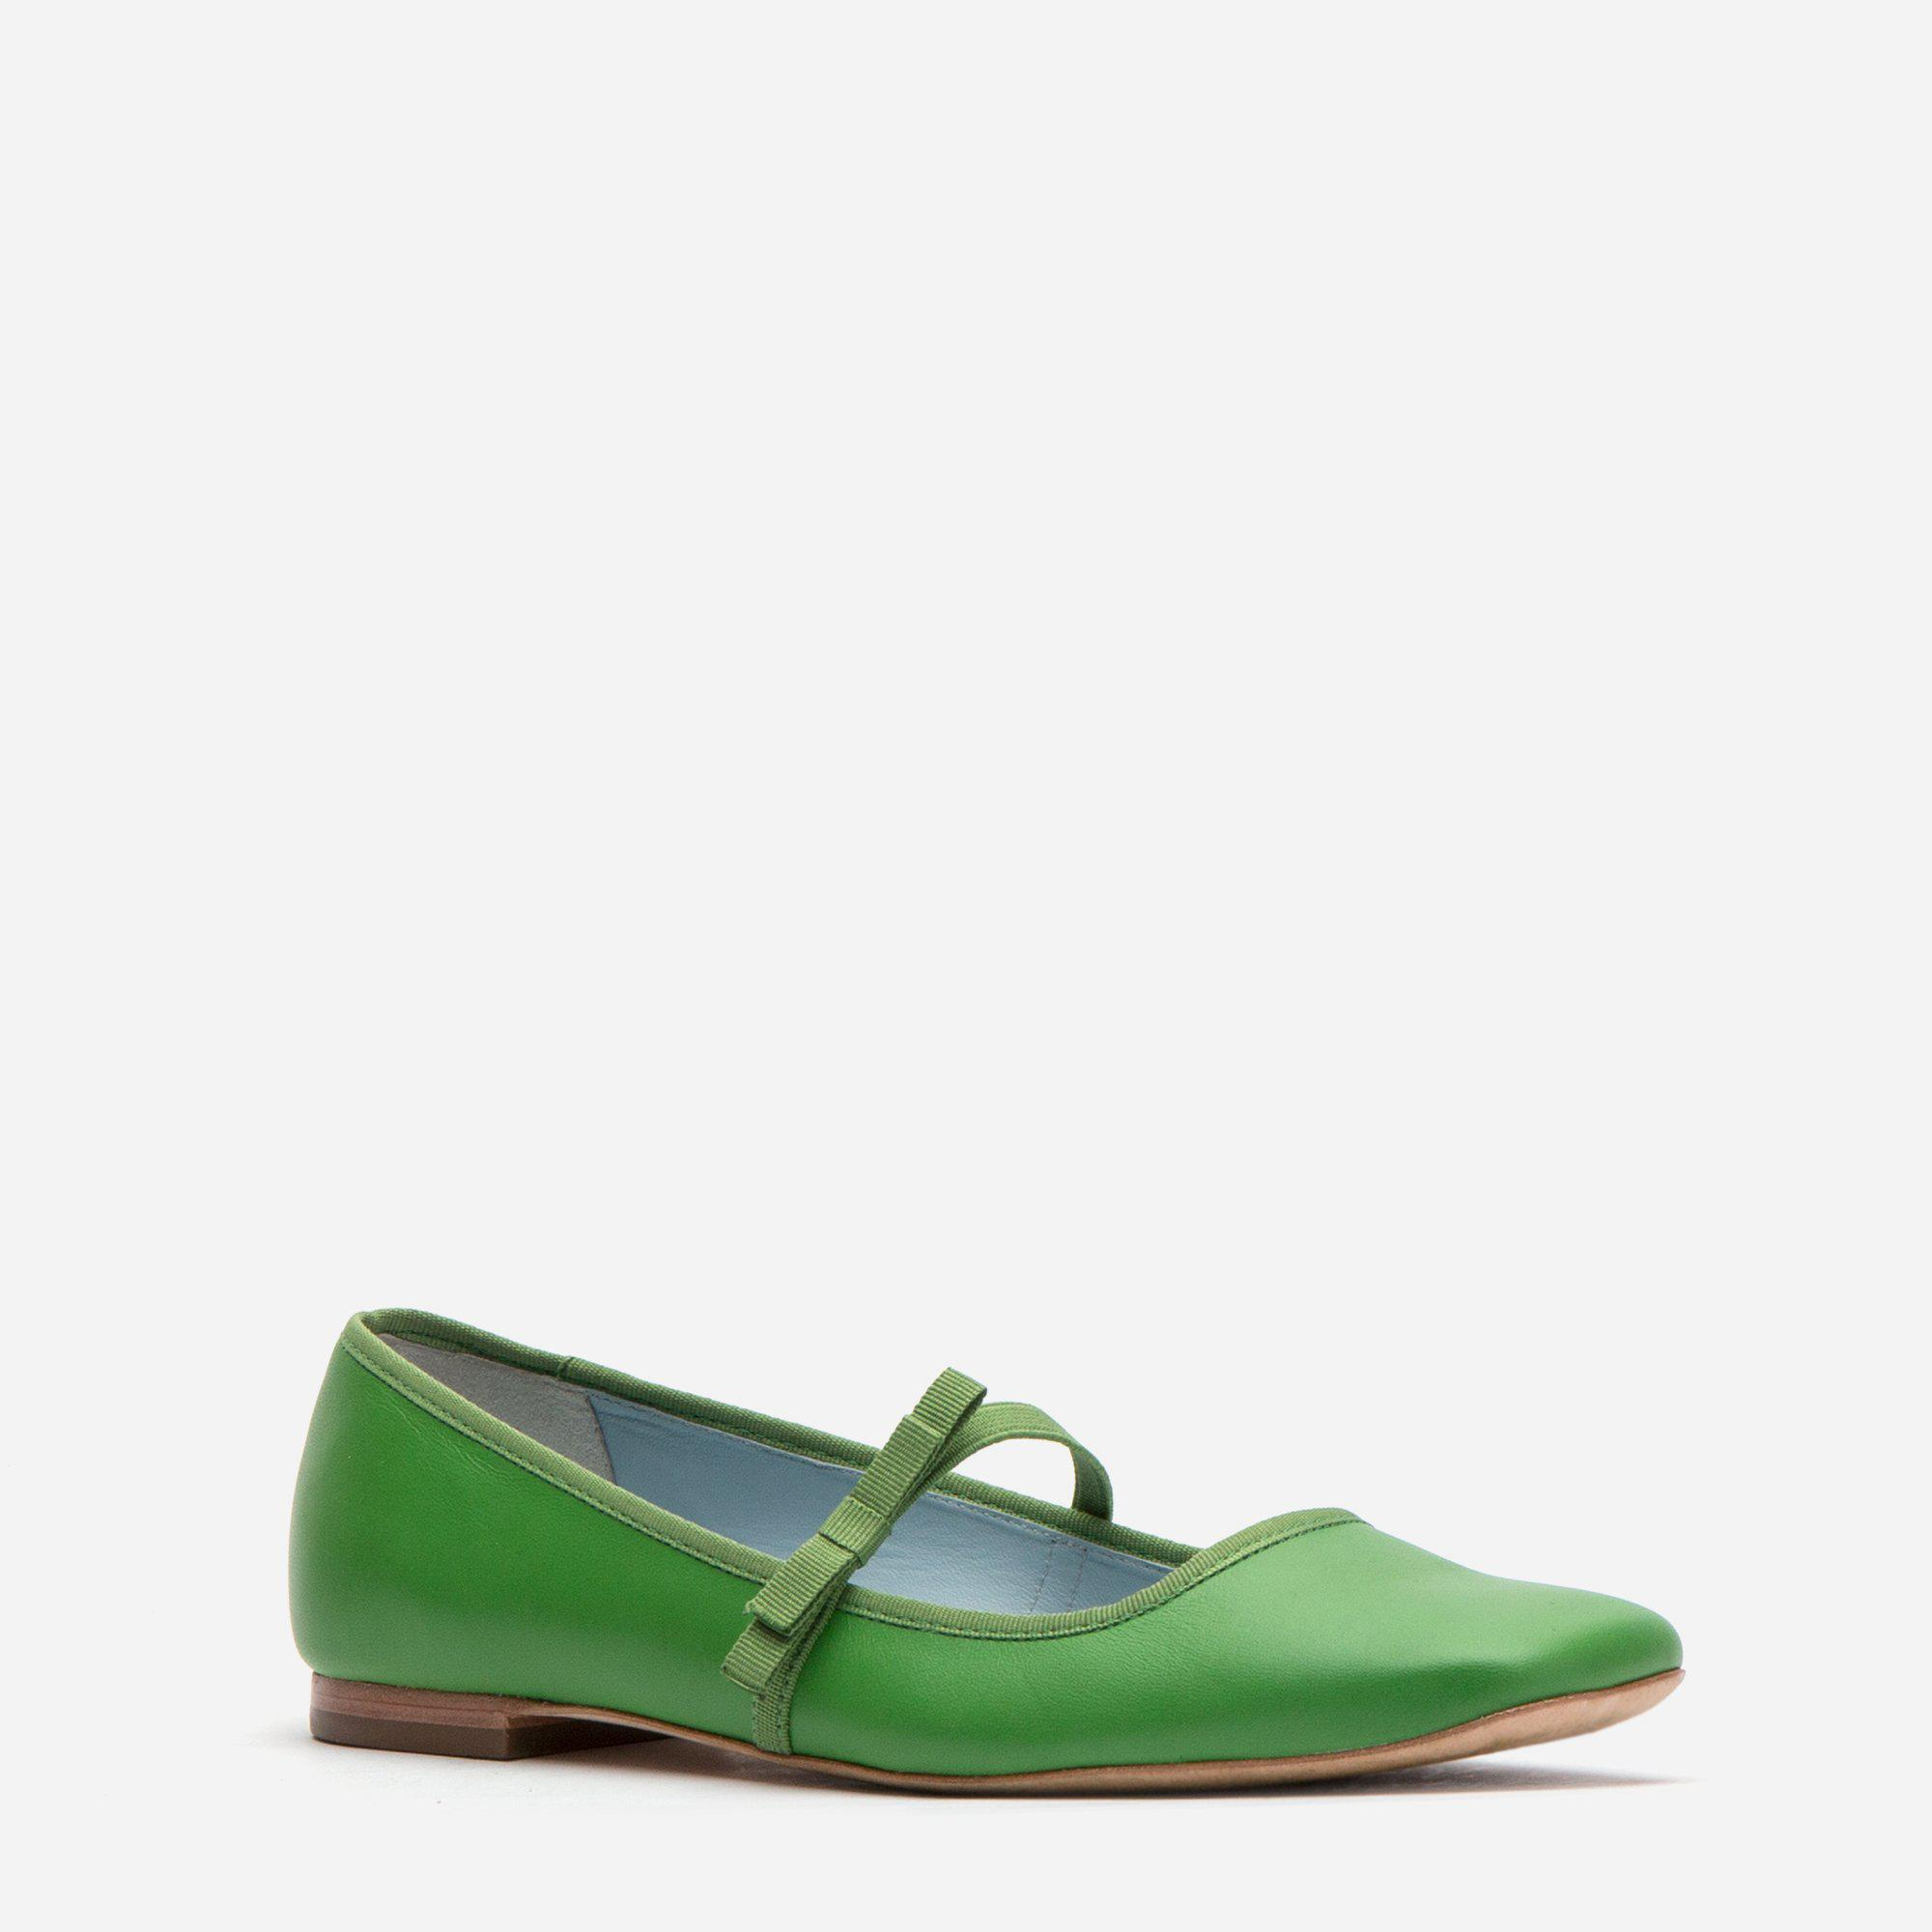 Jude Mary Jane Leather Flat Green 1